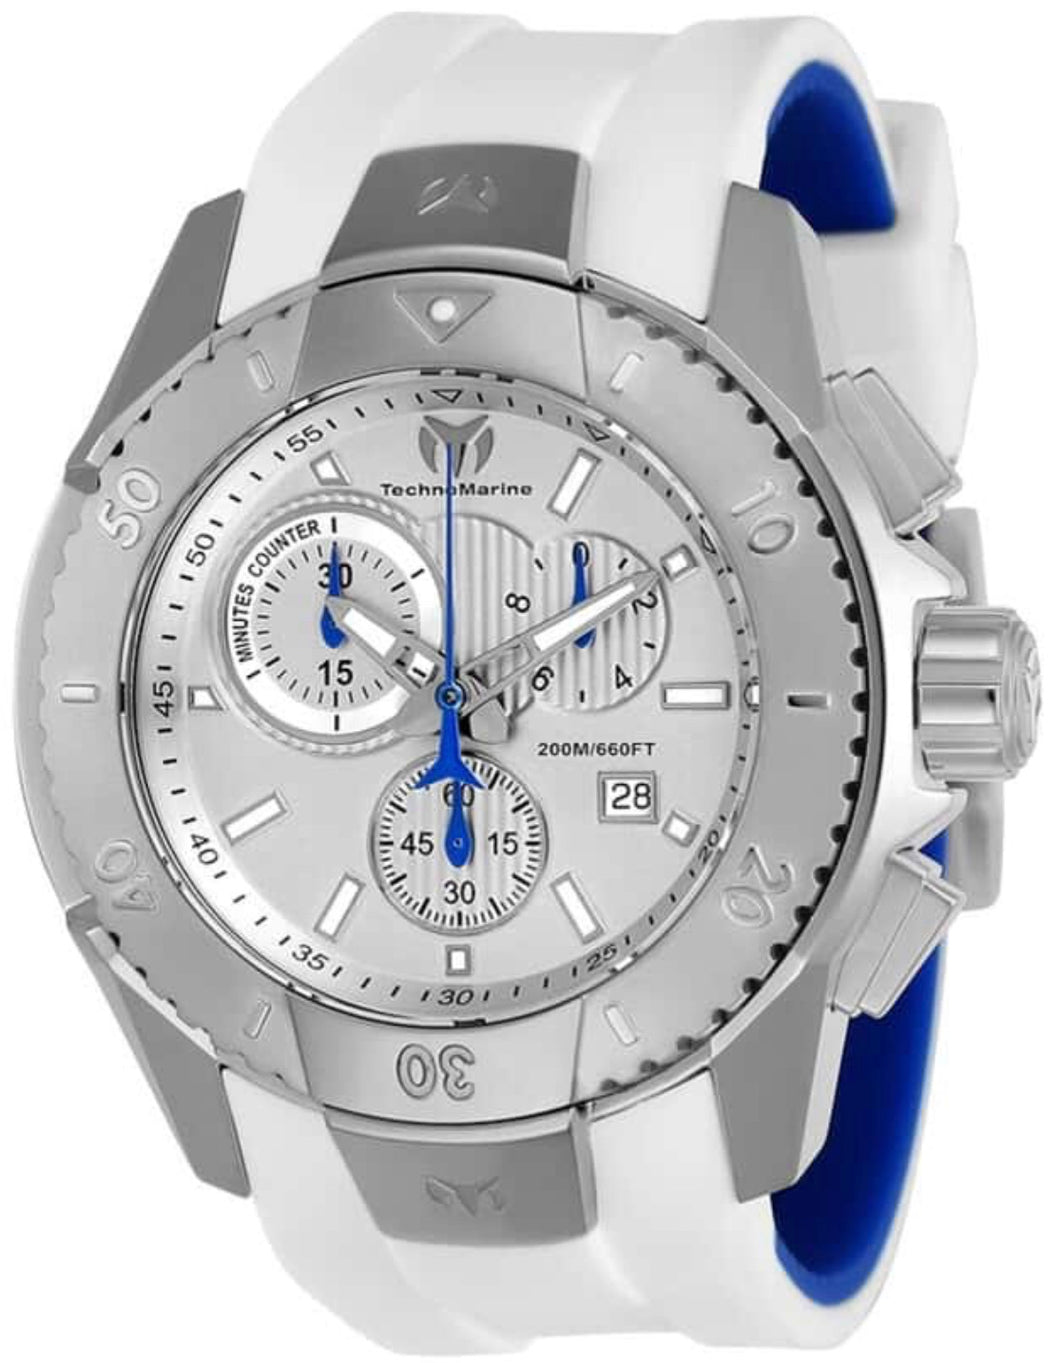 TECHNOMARINE UF6 MENS 48 STAINLESS STEEL CASE SILVER DIAL - MODEL TM-616001 - Boutique Watches & More